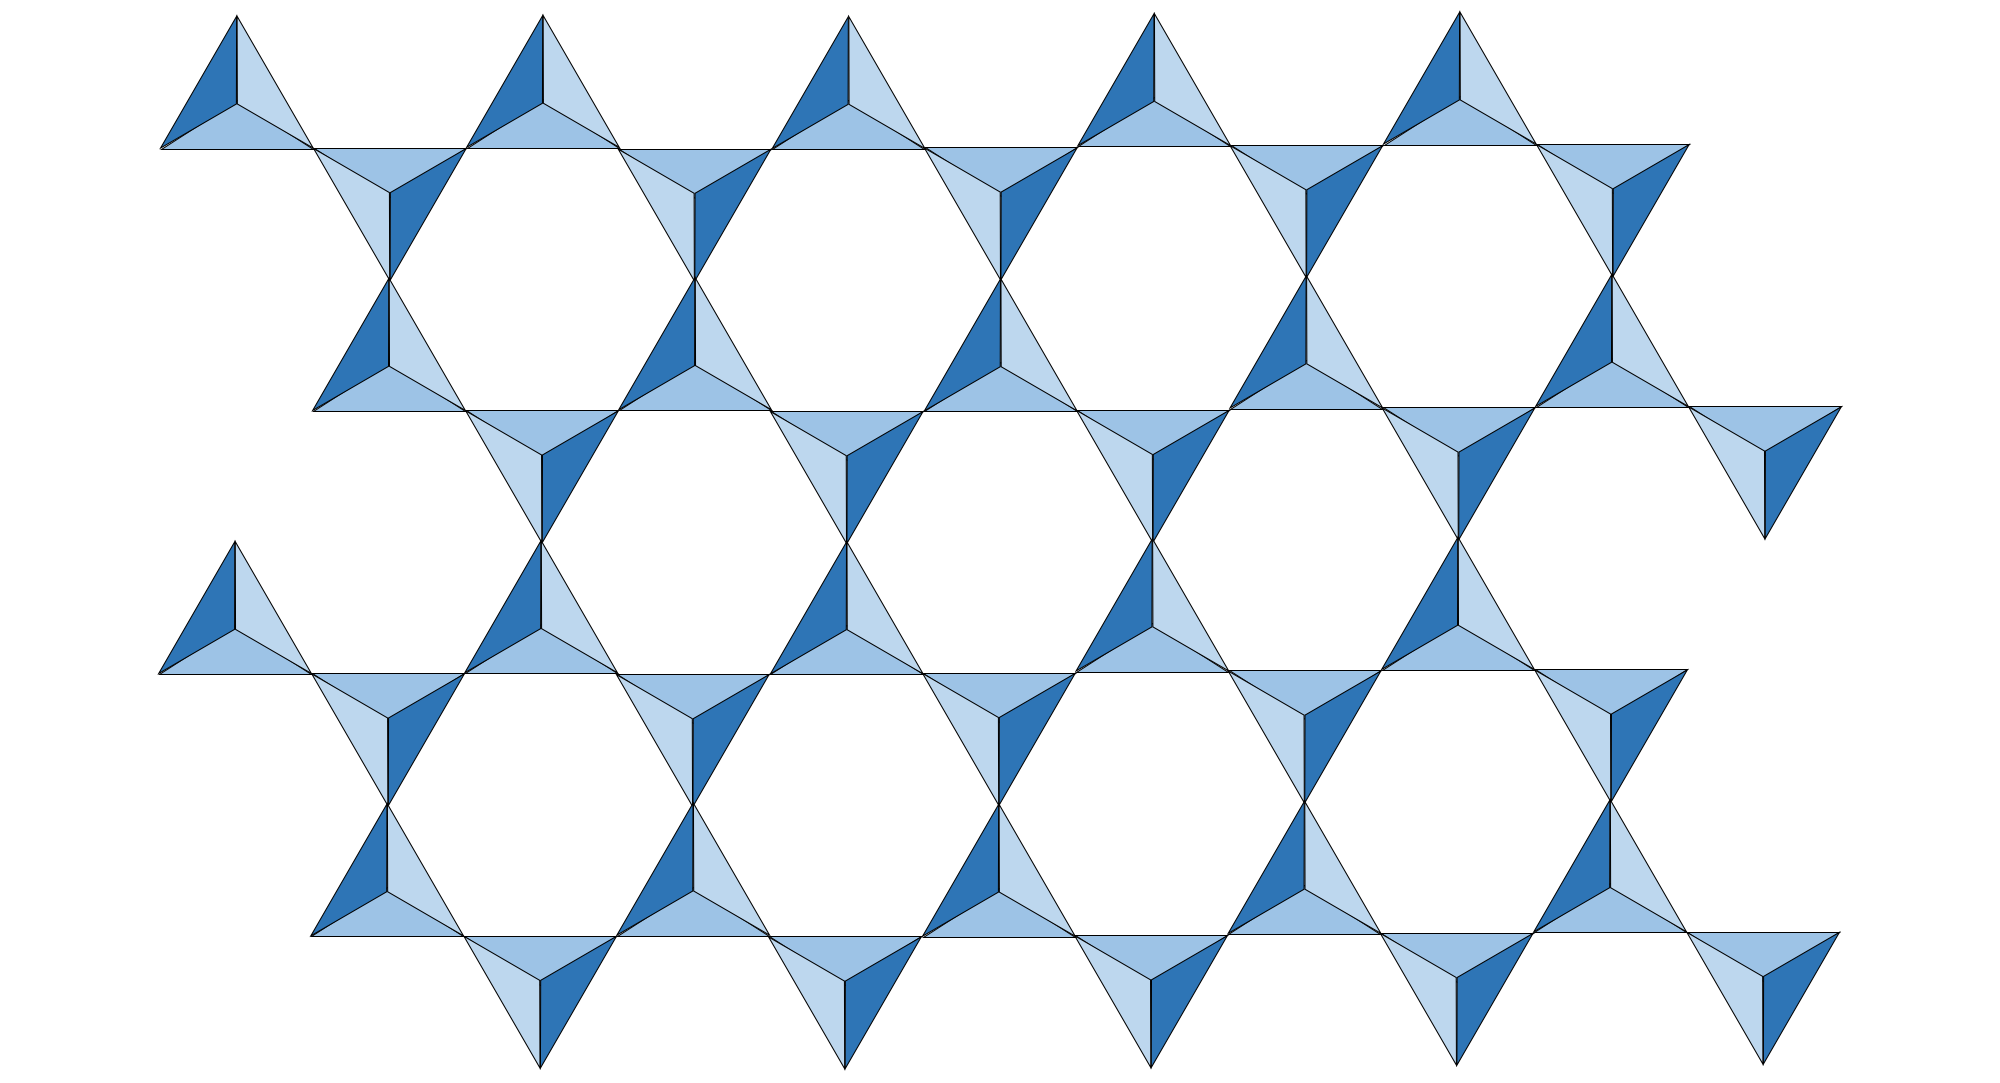 Illustration of a sheet of silicate tetrahedra.